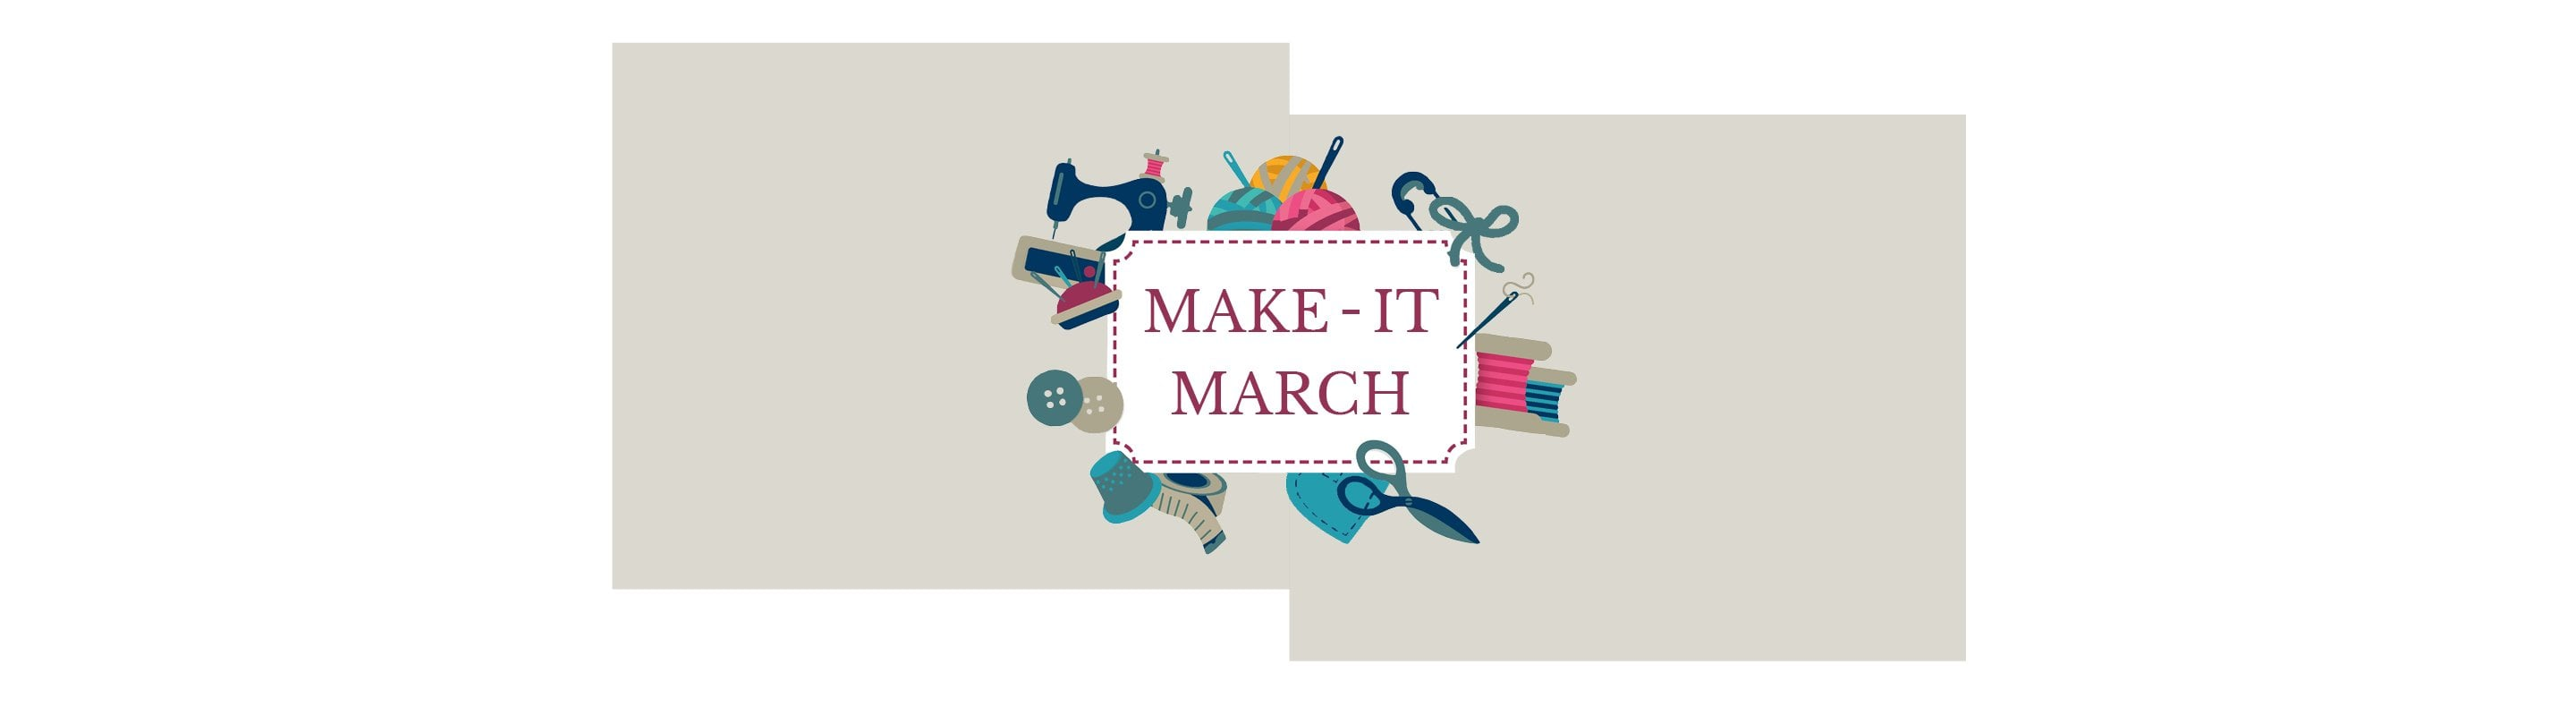 Get Involved! Make-It March 2020